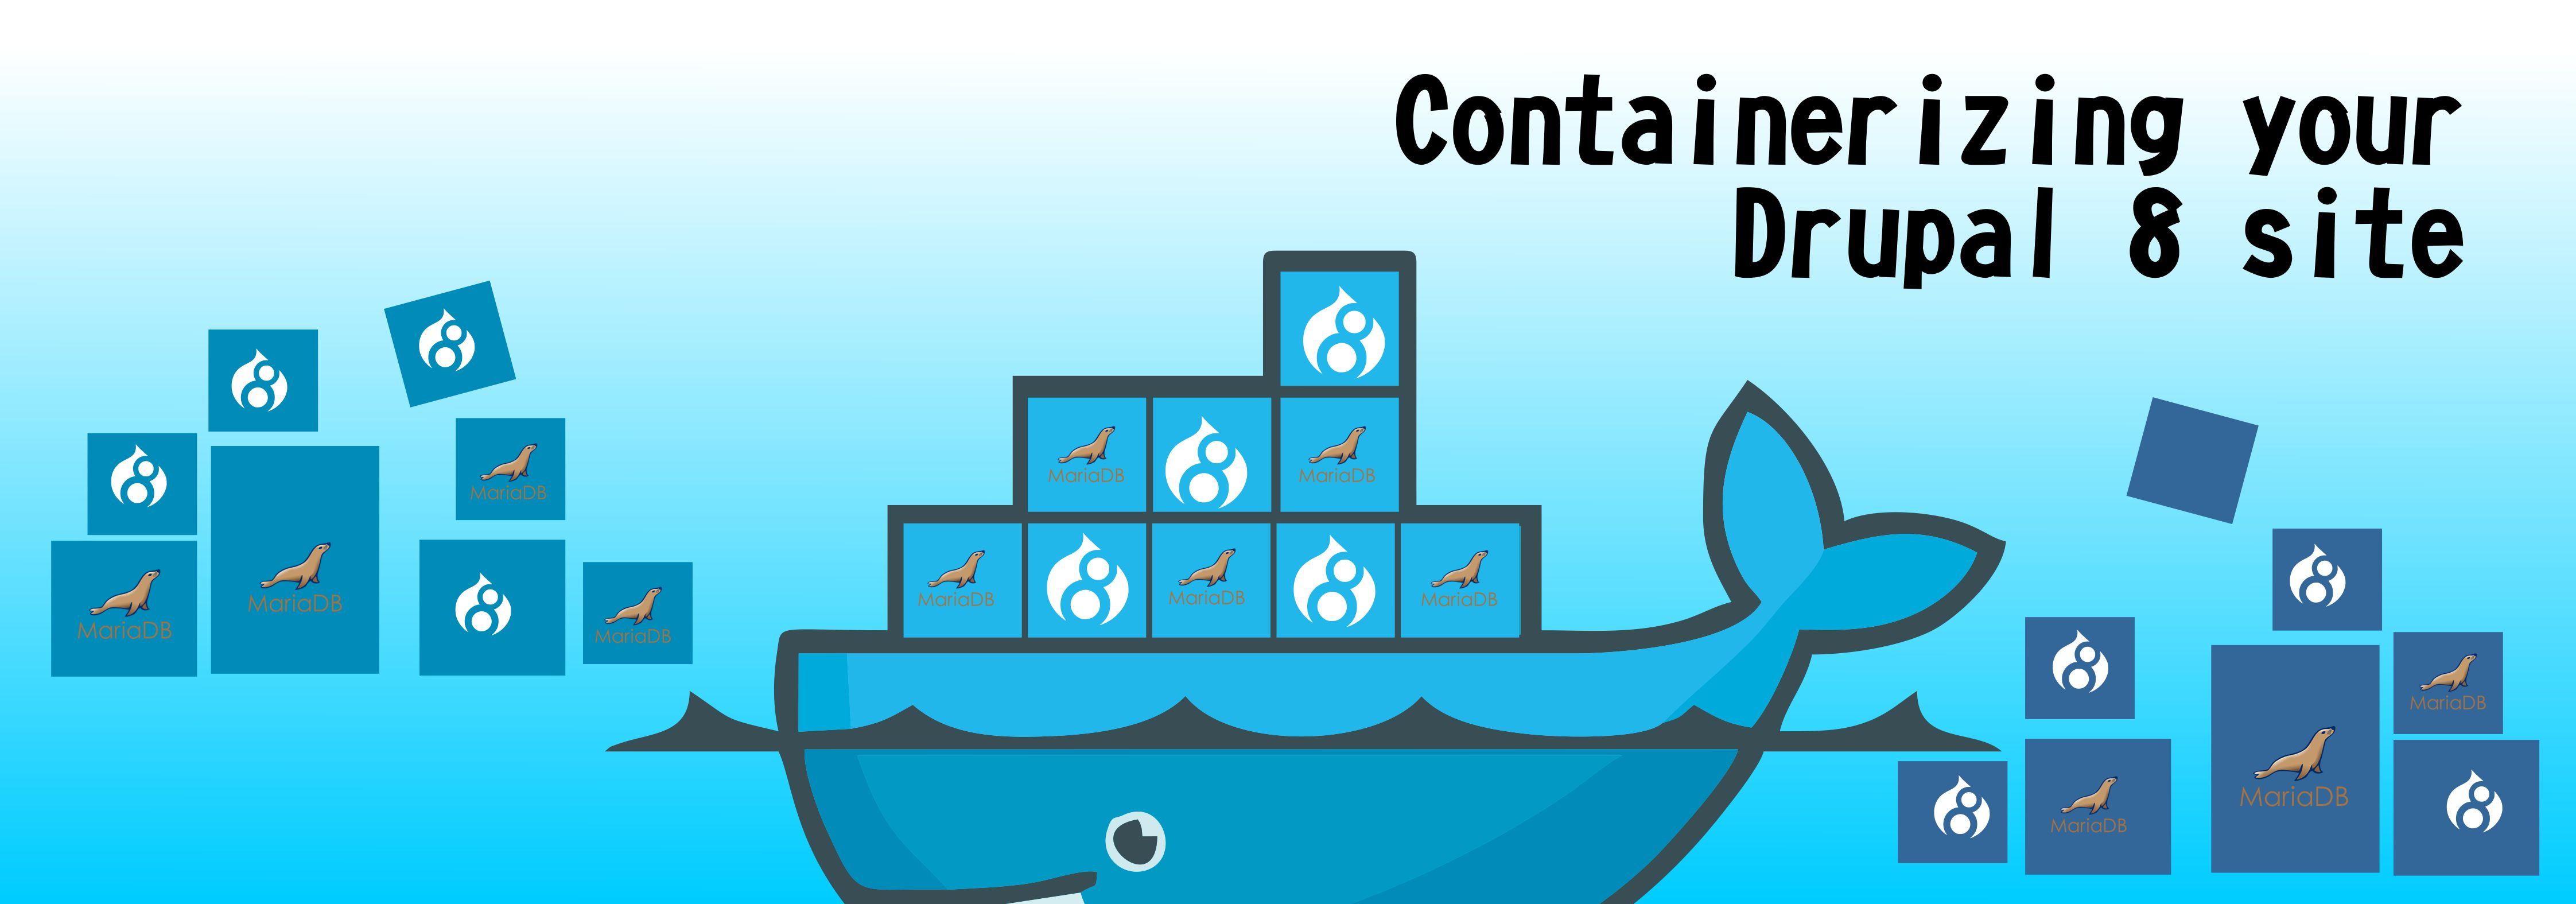 Local Drupal development using Docker